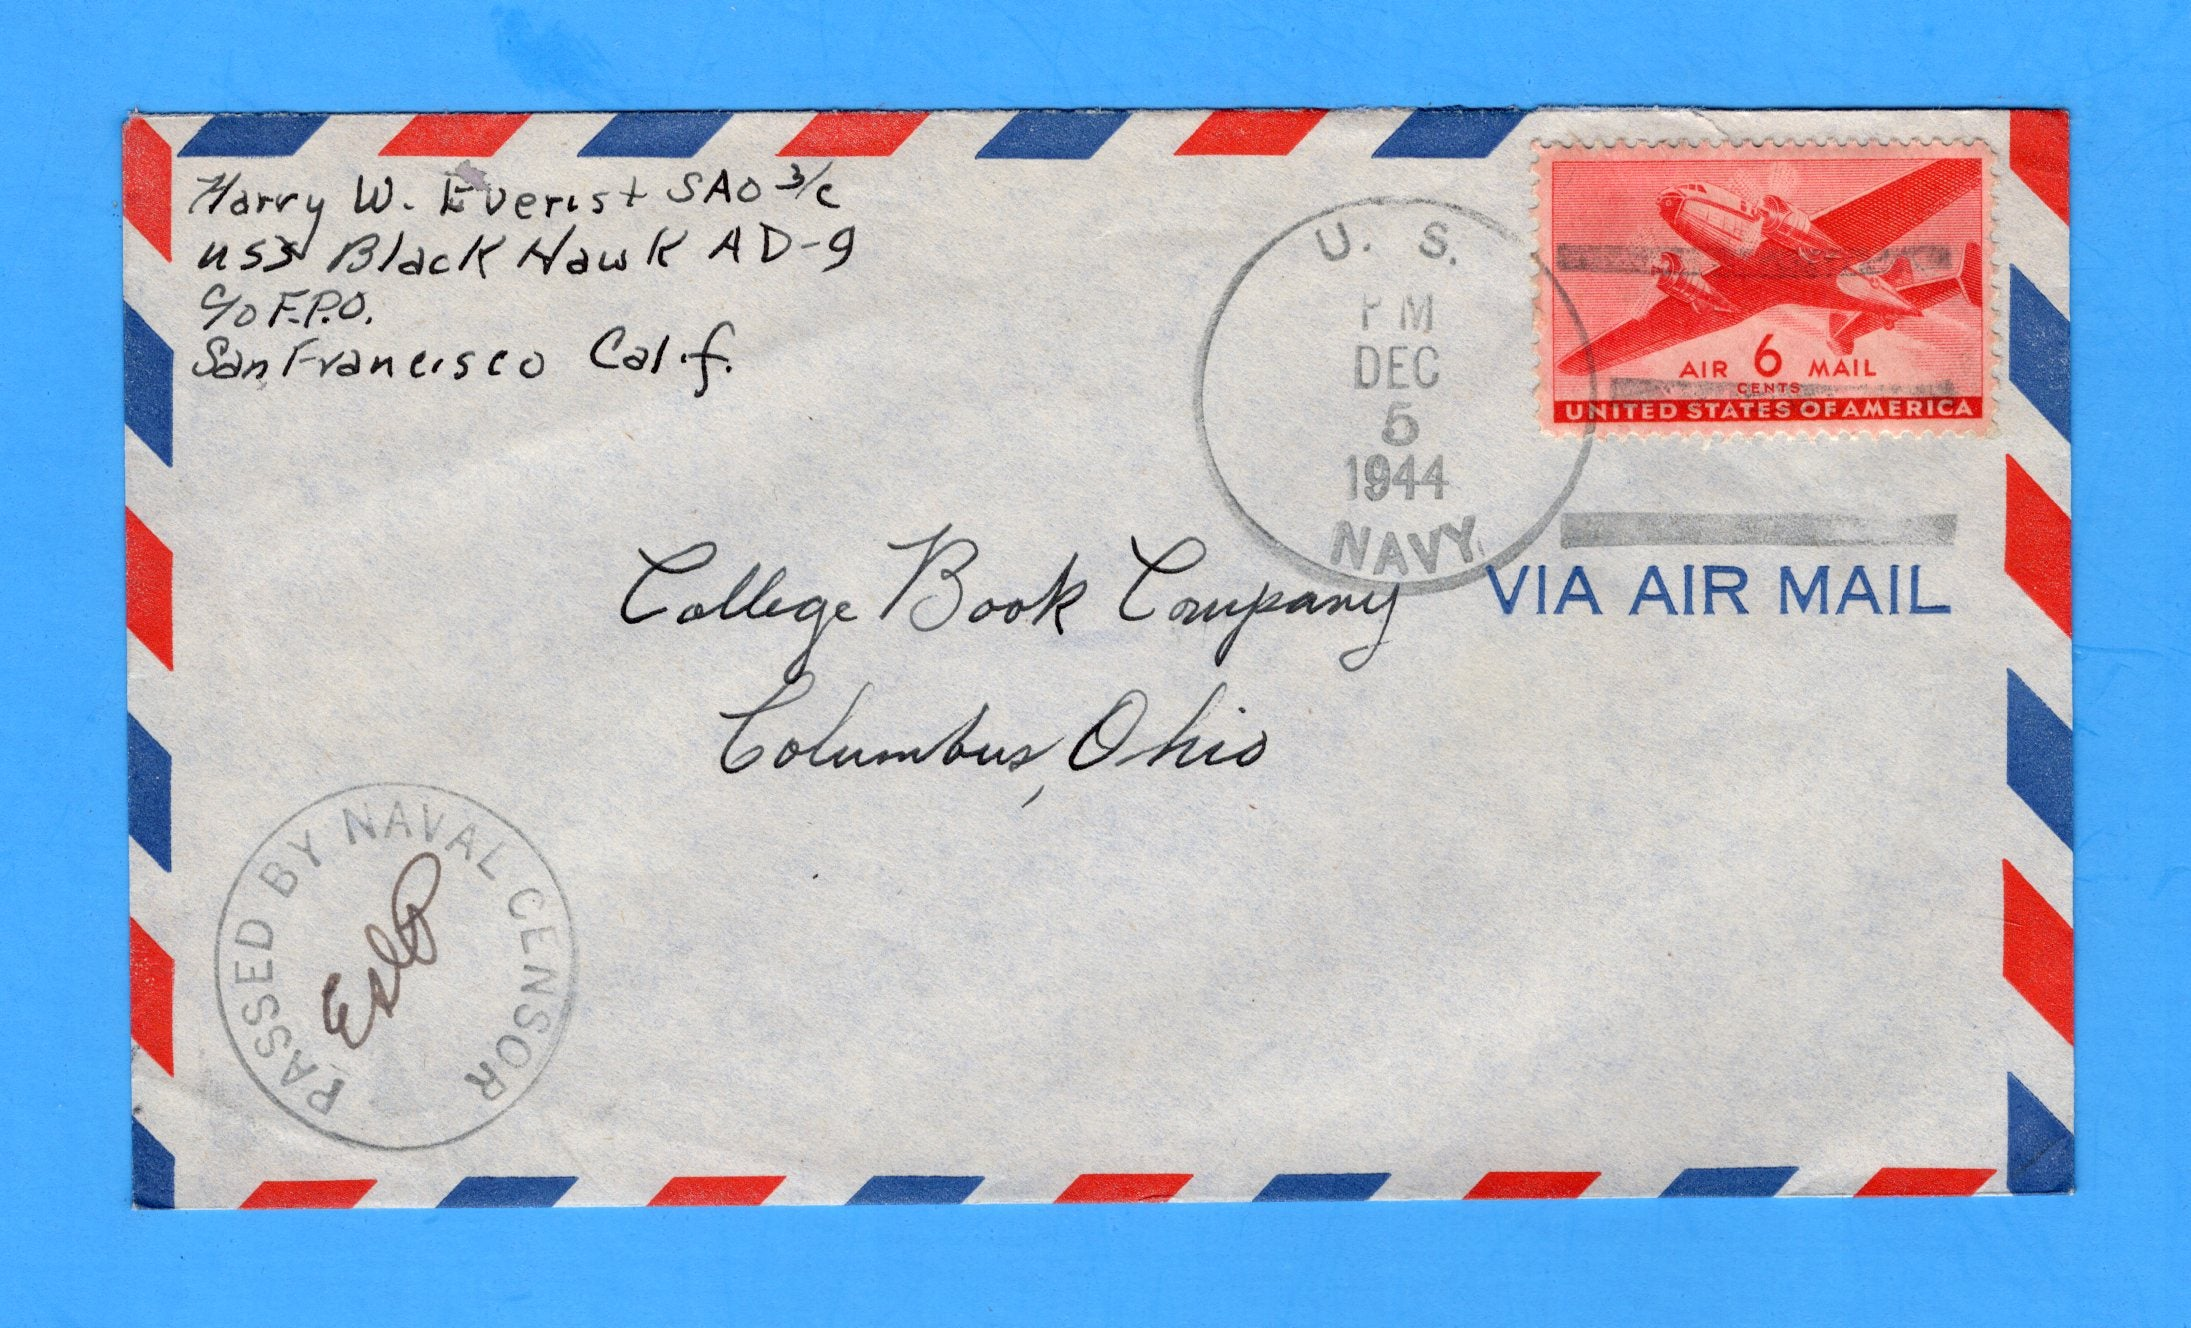 USS Black Hawk AD-9 Sailor's Censored Mail December 5, 1944 - Adak, Alaska